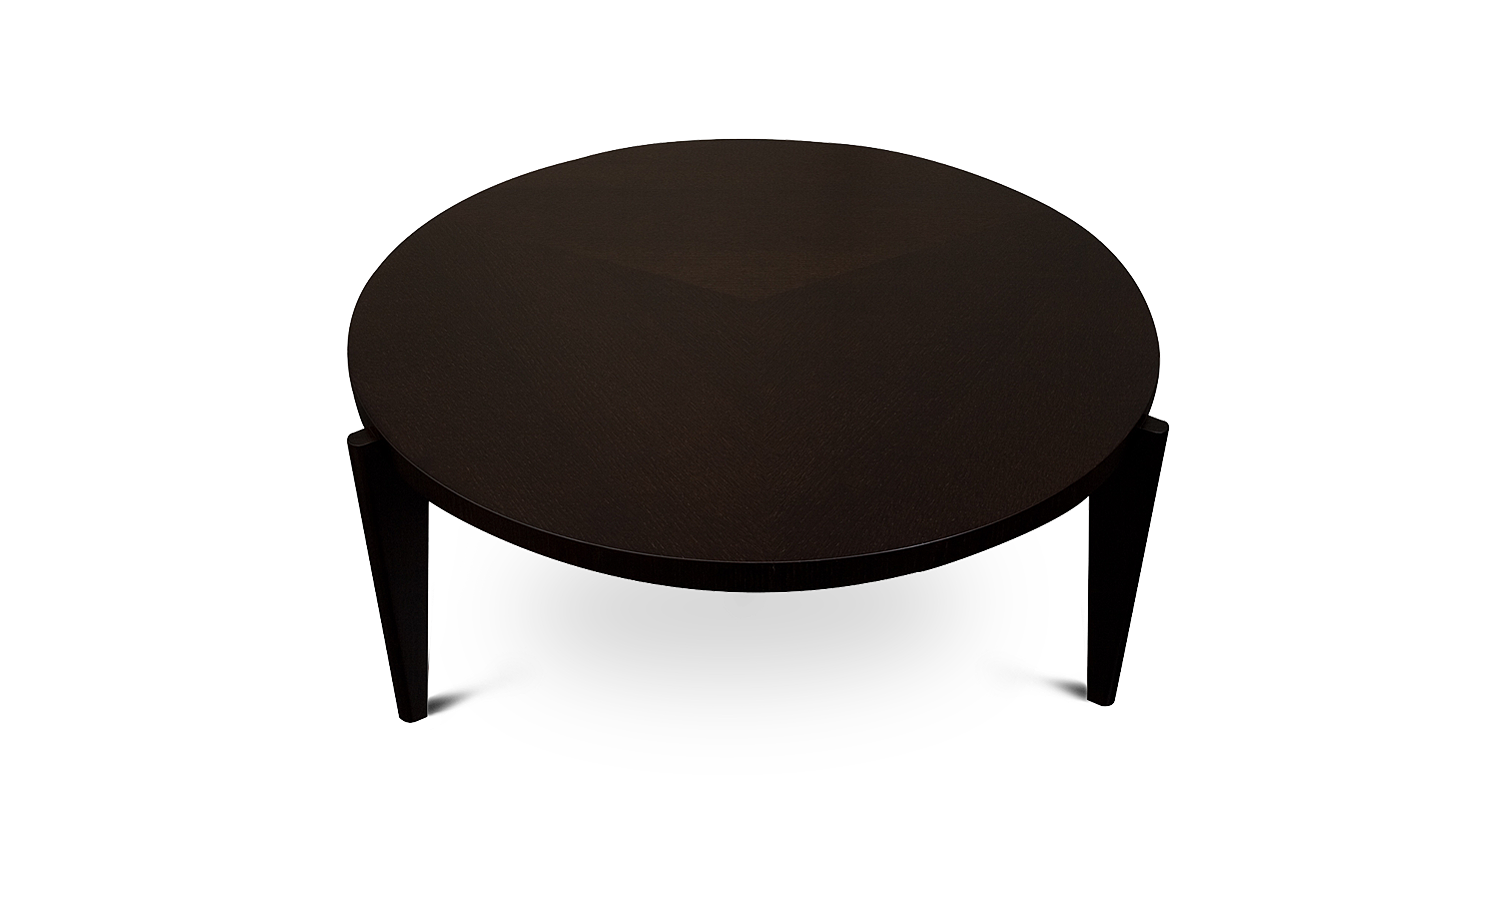 coffe_table_arhus_round_hamiltonconte_packshot3.png